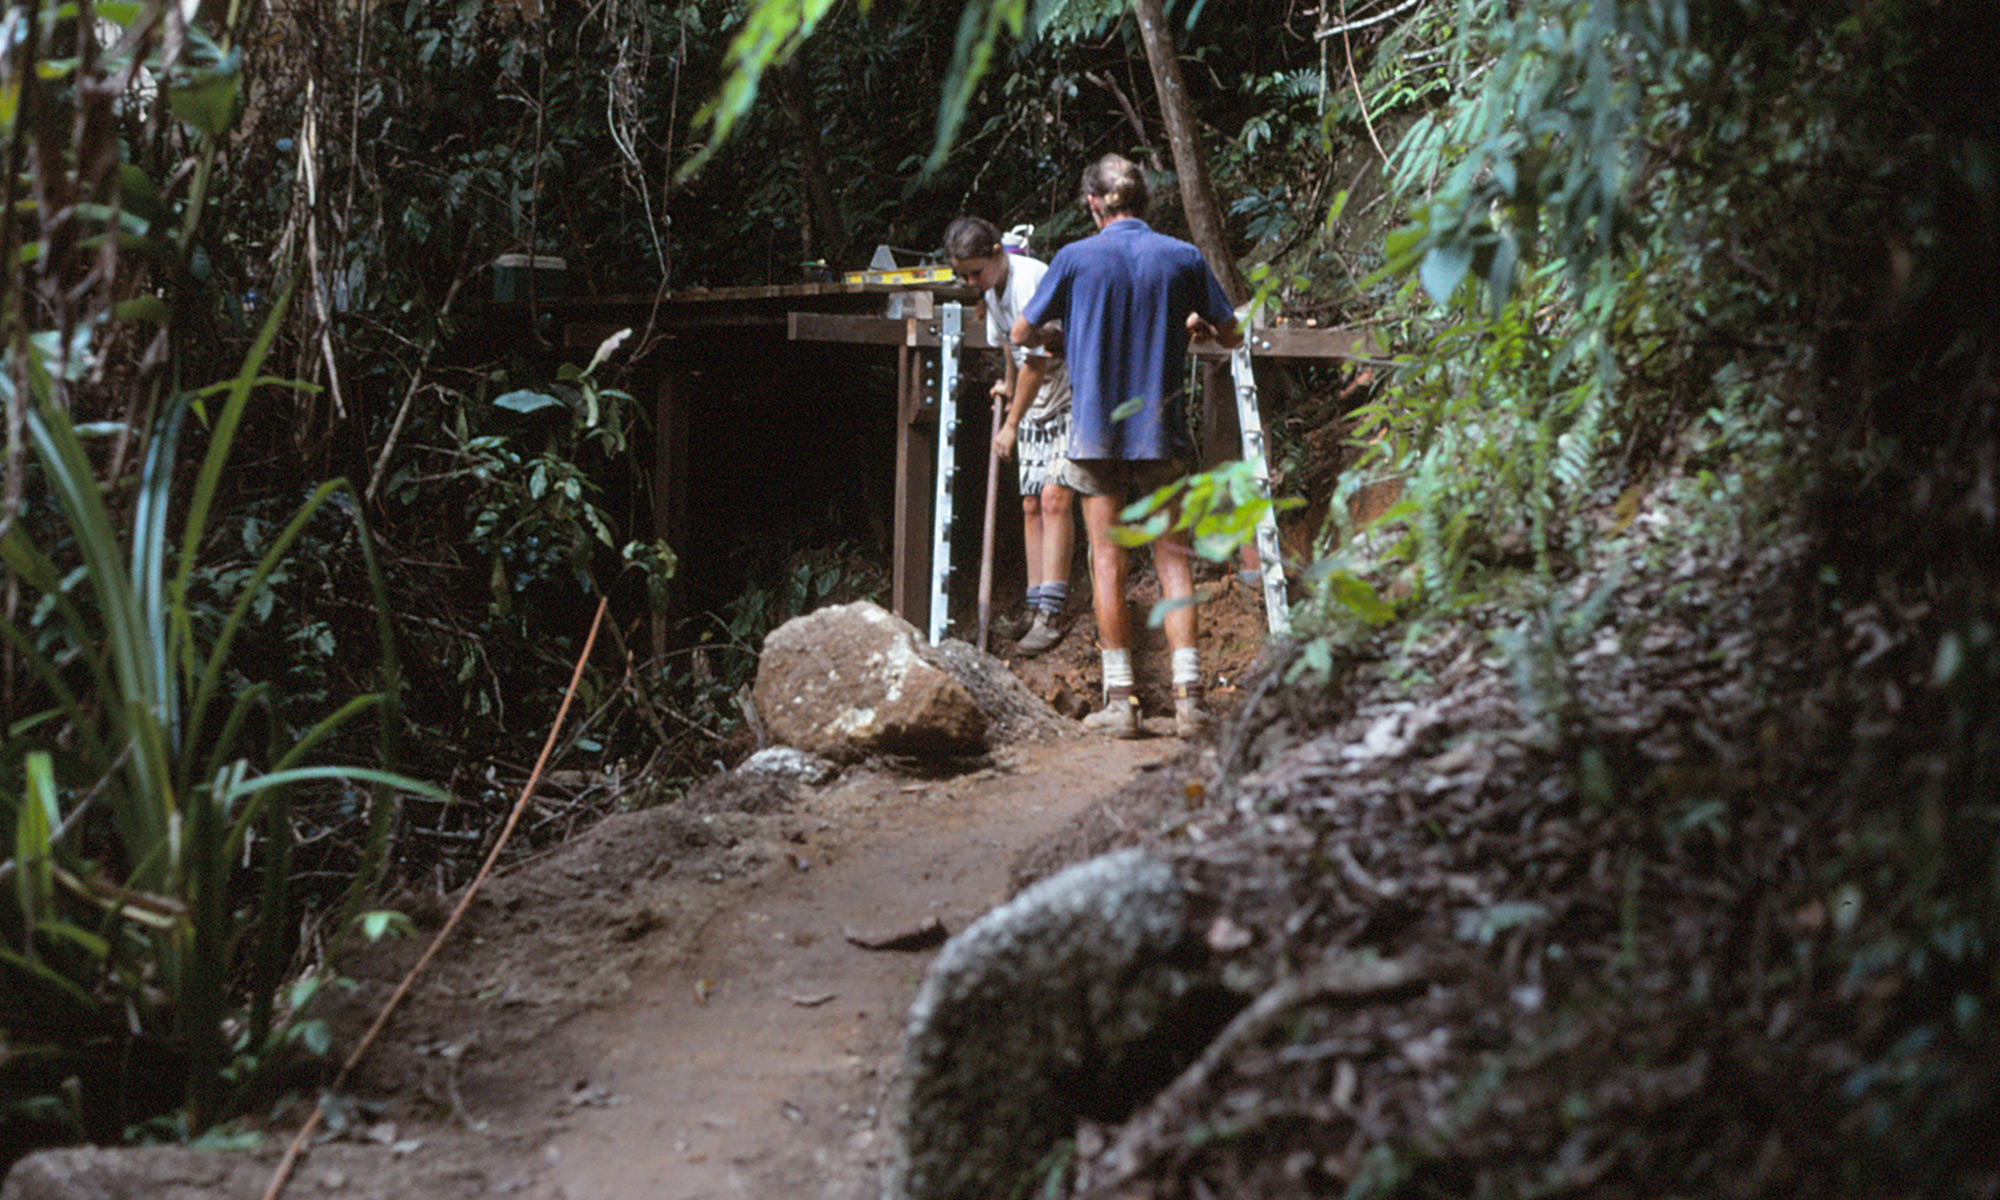 Reconstructing a national park walking track